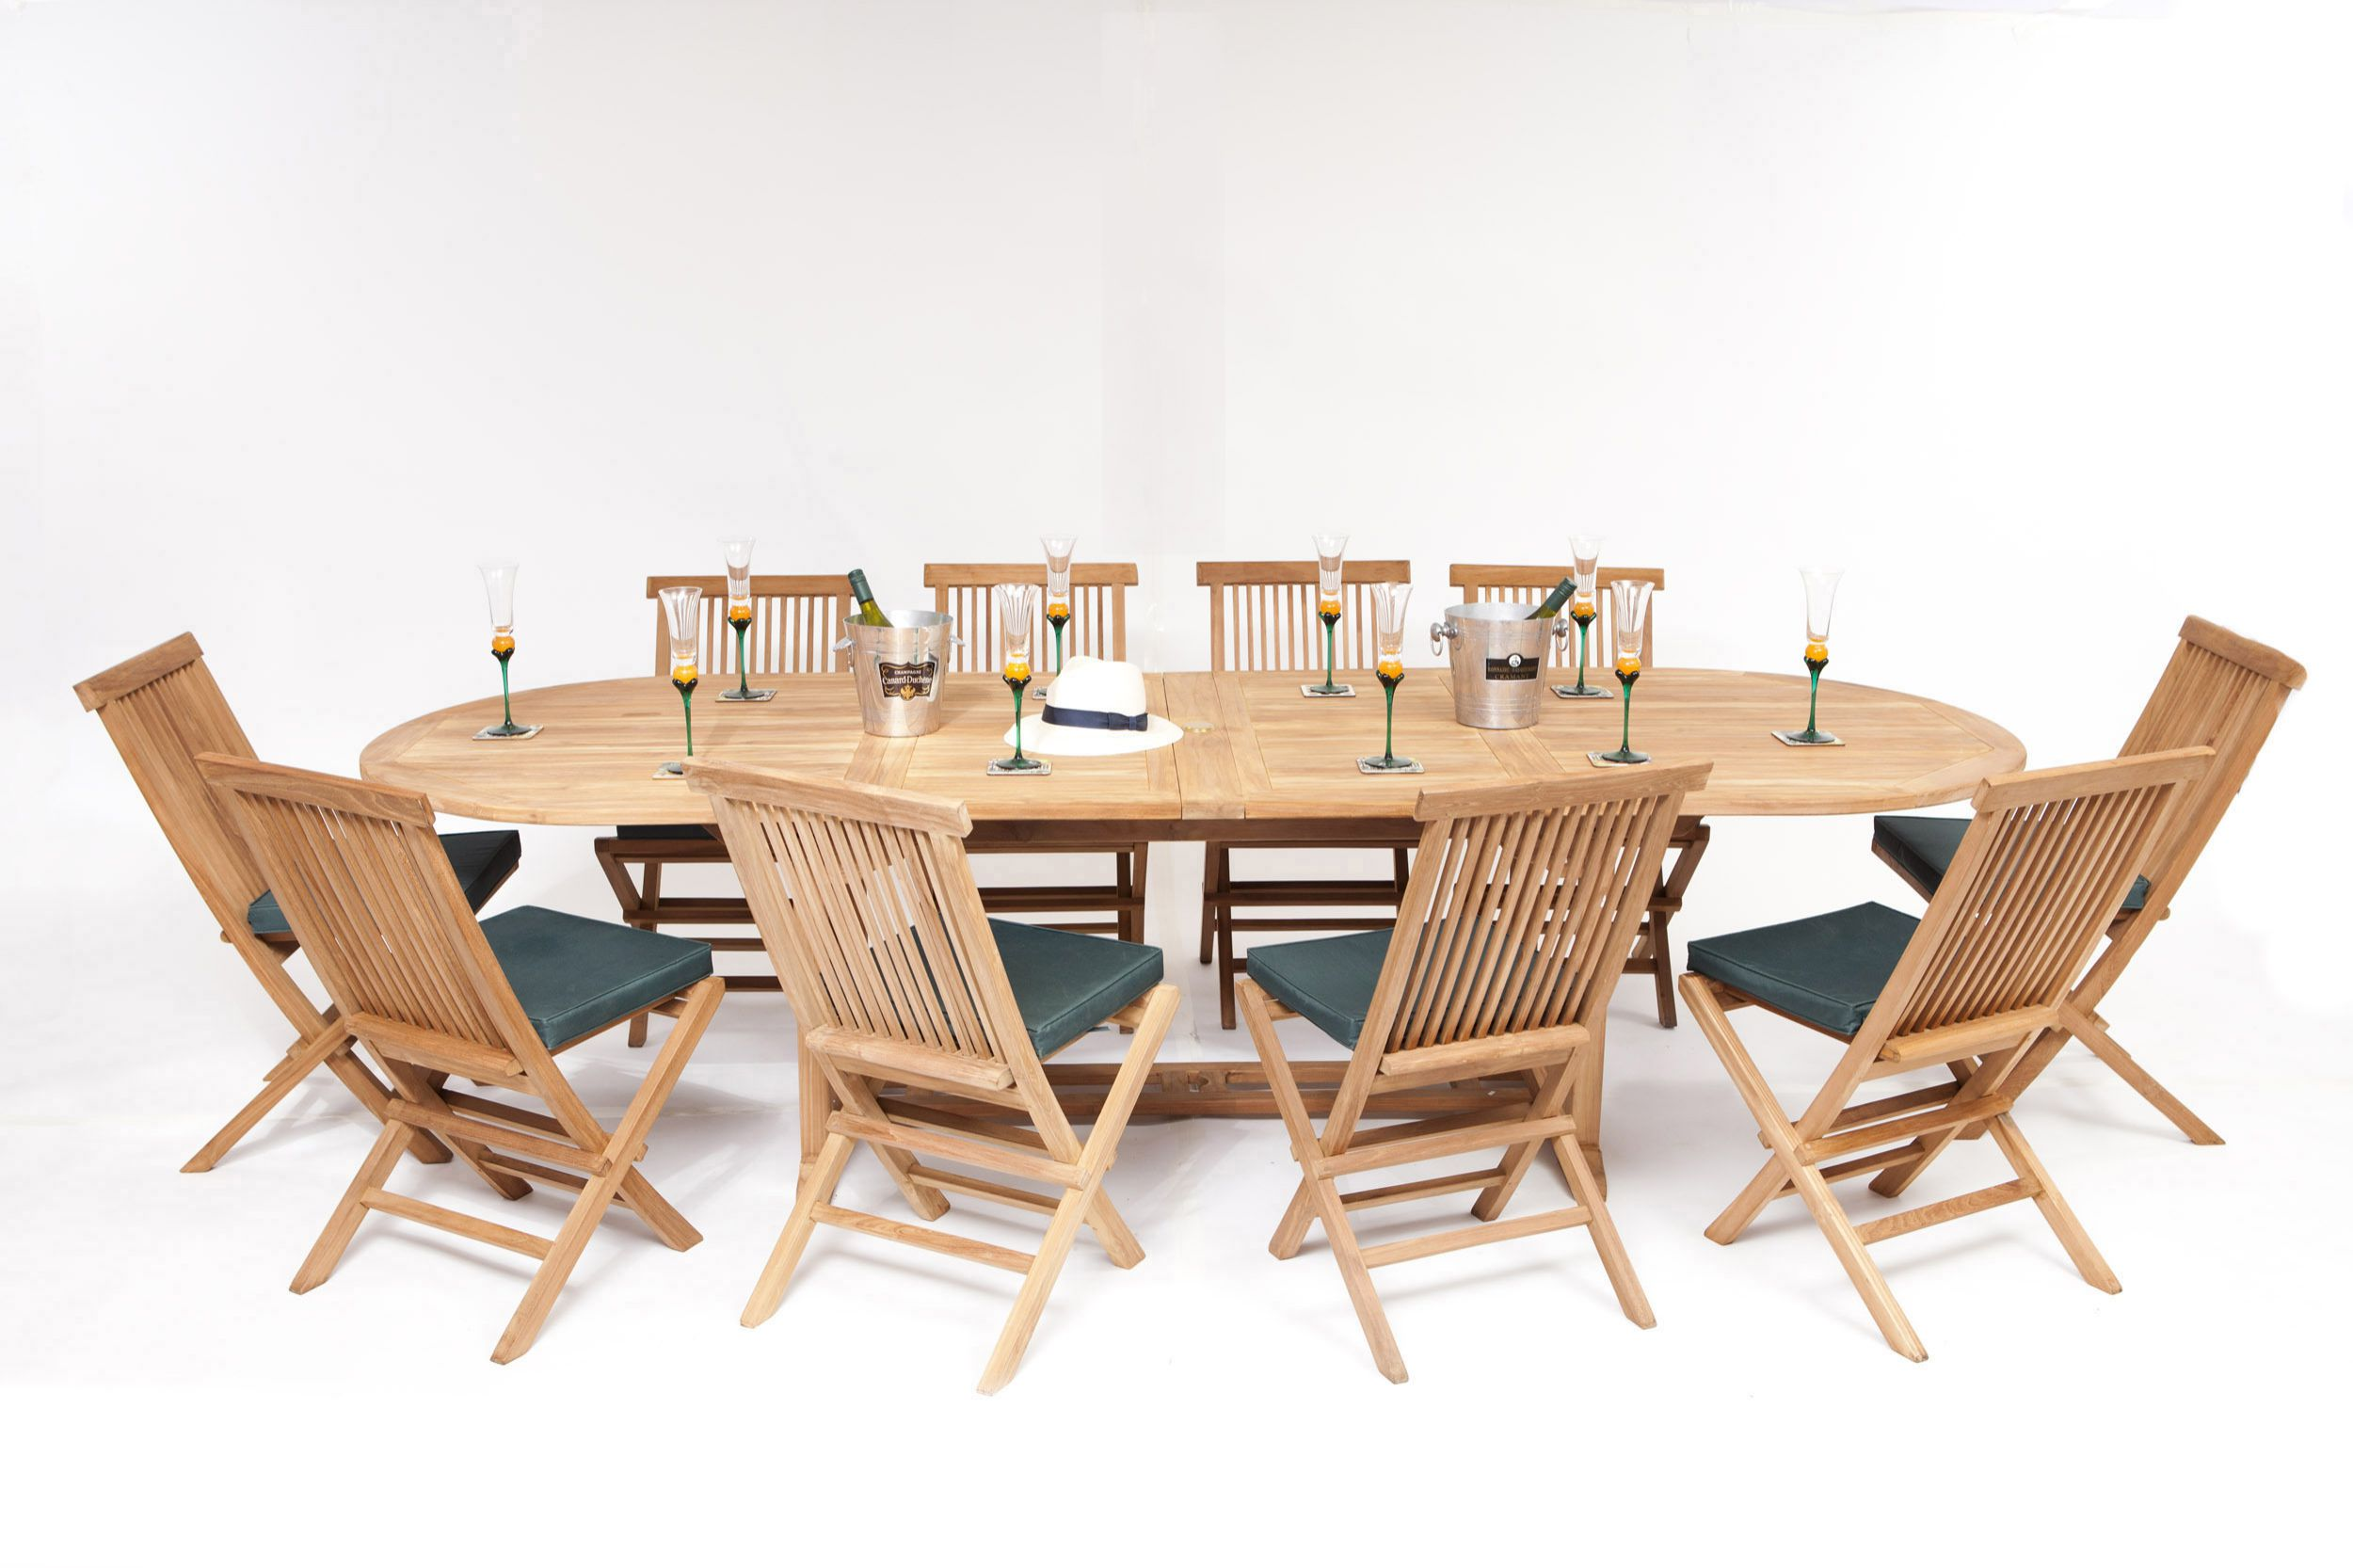 Monaco Teak Garden 10 Seater Table Chairs Set